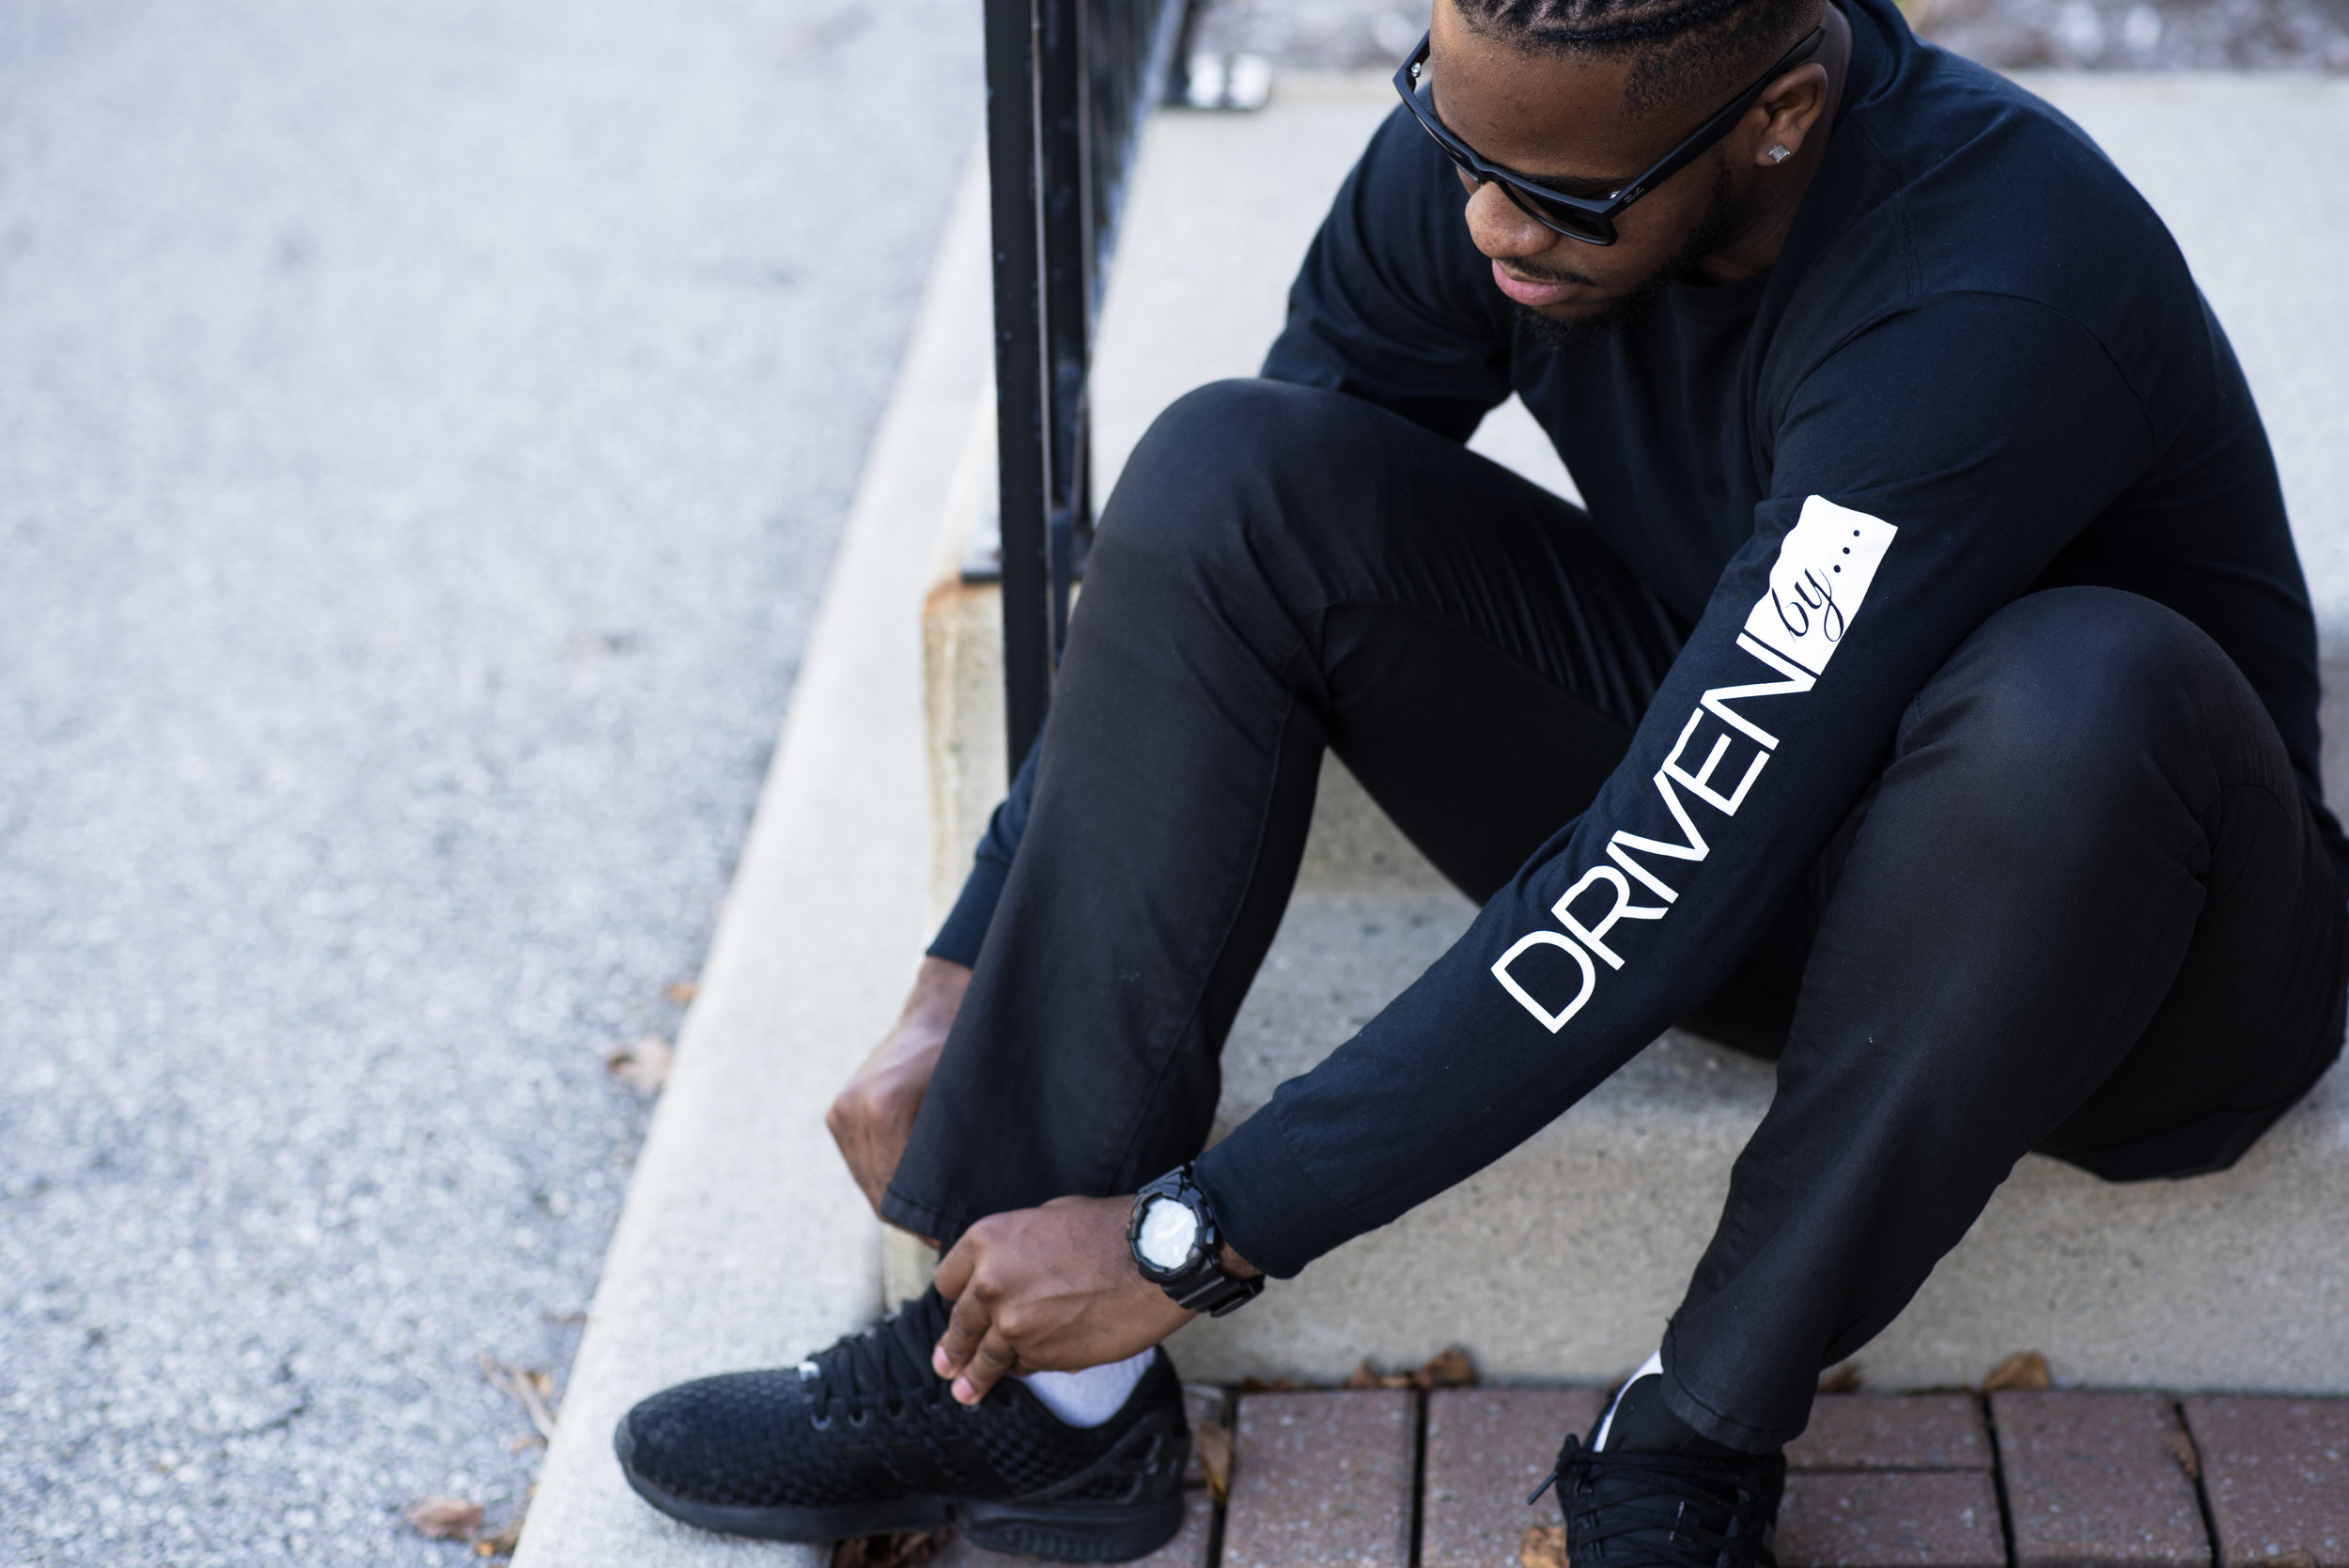 Free Long-Sleeve Contest - We are giving away a free long-sleeve shirt this month!Just enter with your name and e-mail address below so that we can contact you!You'll also get cool DrivenBy… updates!Yes, it's that simple.Good luck!